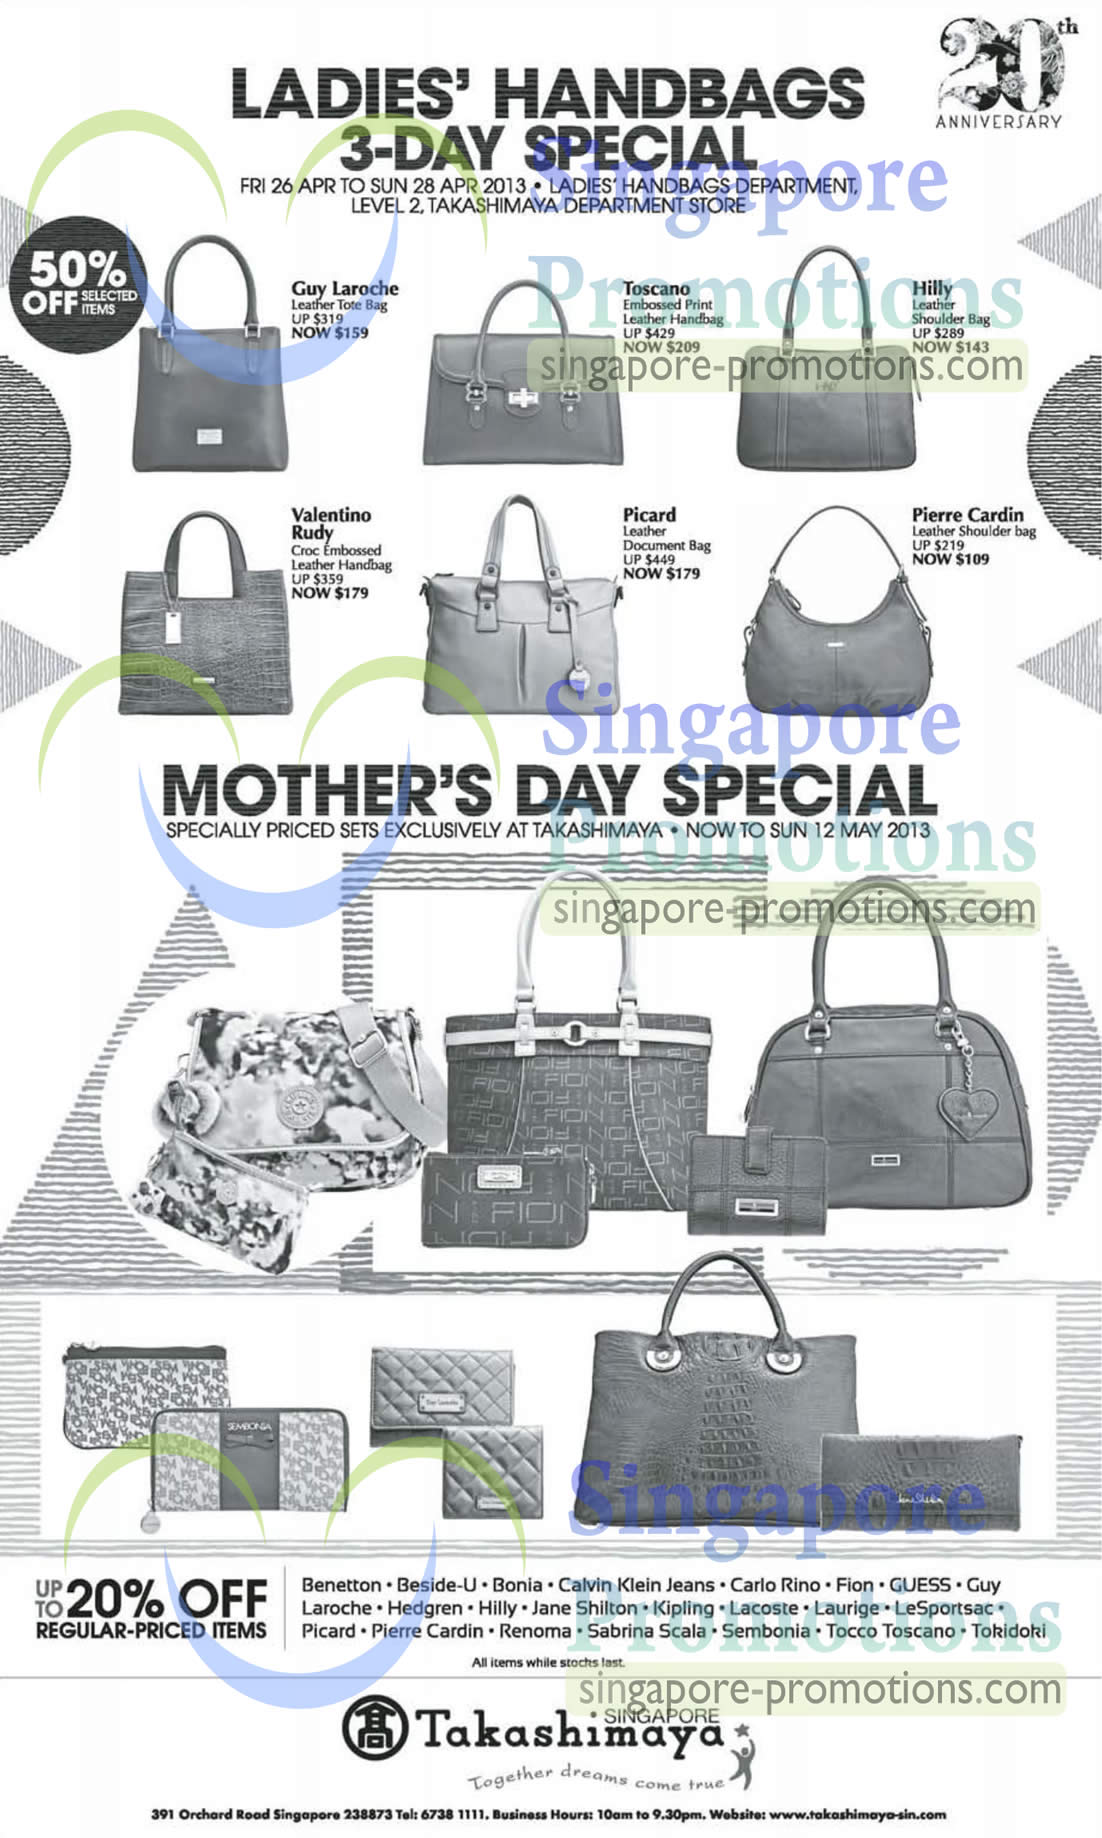 79bee4452a91 Takashimaya Ladies Handbags 3 Day Special Offers 26 – 28 Apr 2013